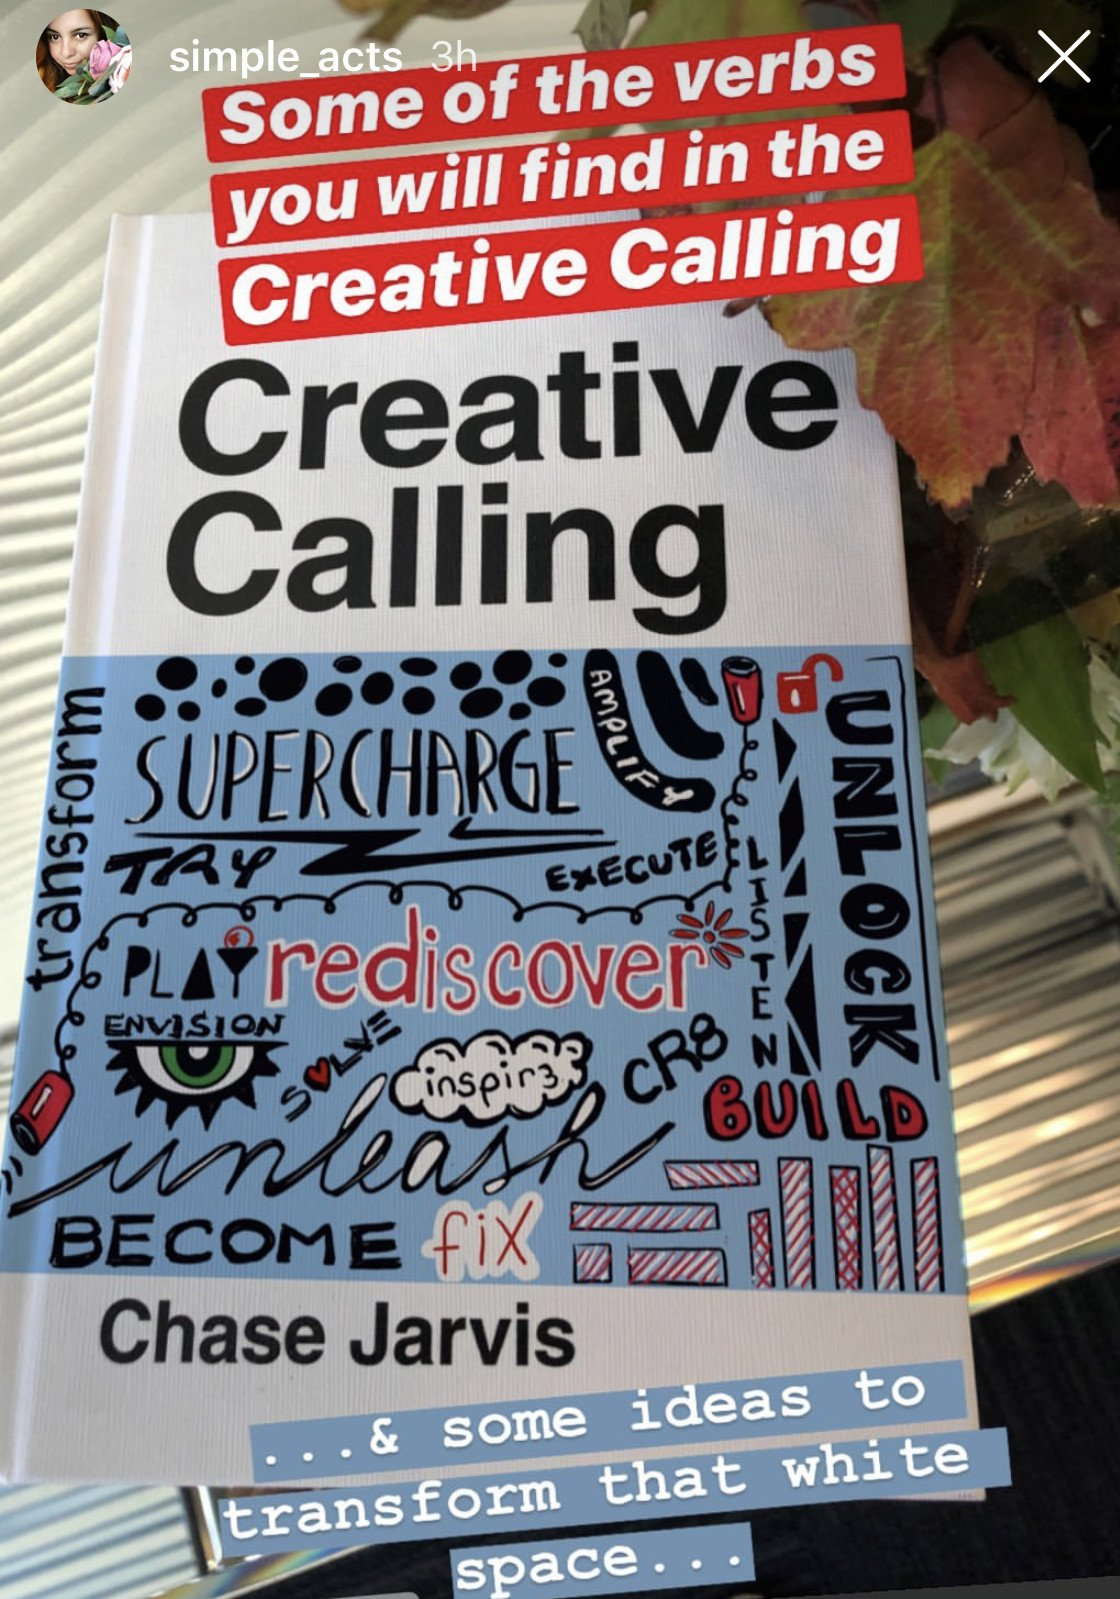 WOW! This is exactly what we want to see with that white space 🖌🙏Share your cover art with #creativecalling @chasejarvis https://t.co/A2ockUj8Oi